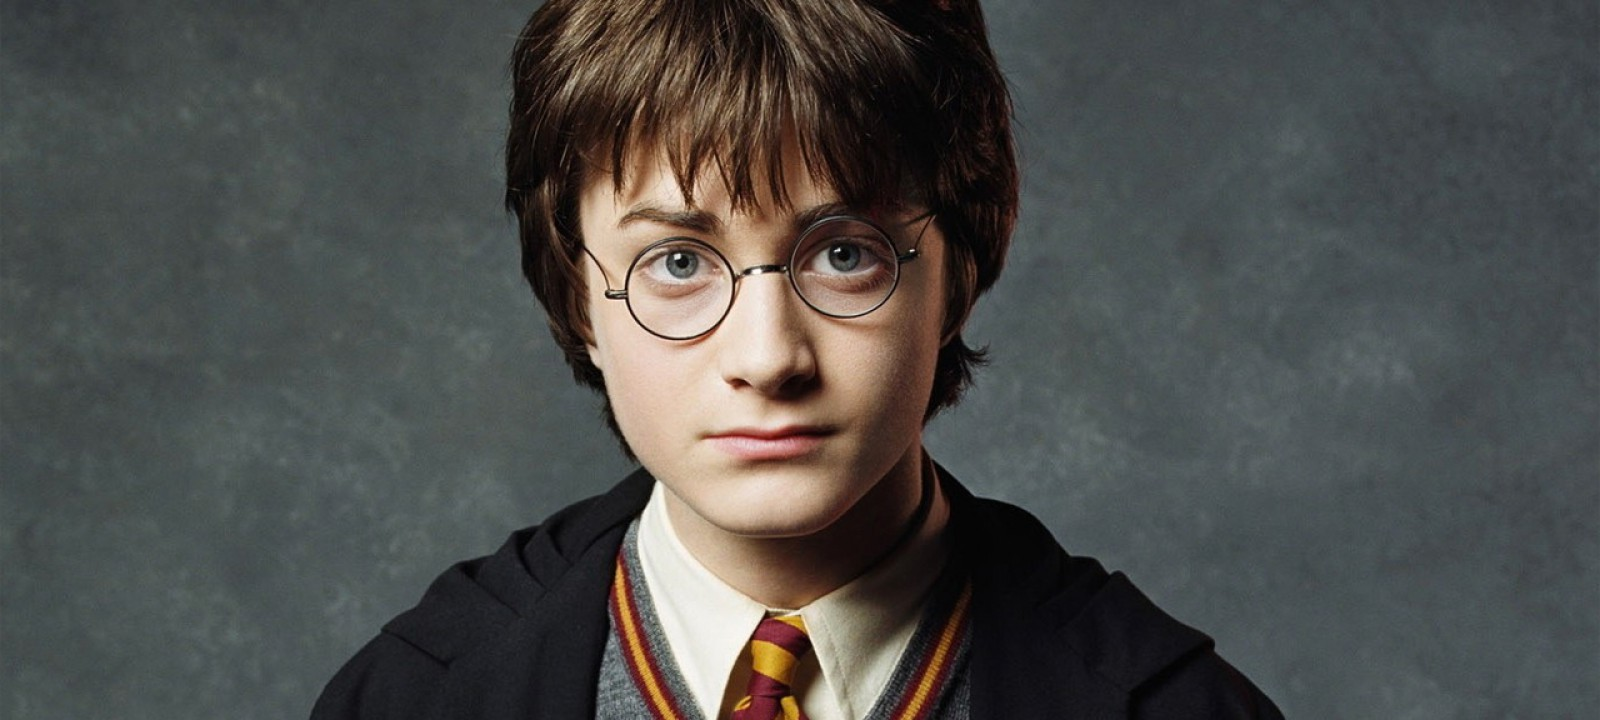 Daniel Radcliffe as Harry Potter in 'Harry Potter and the Philosopher's Stone' (Pic: Warner Bros)